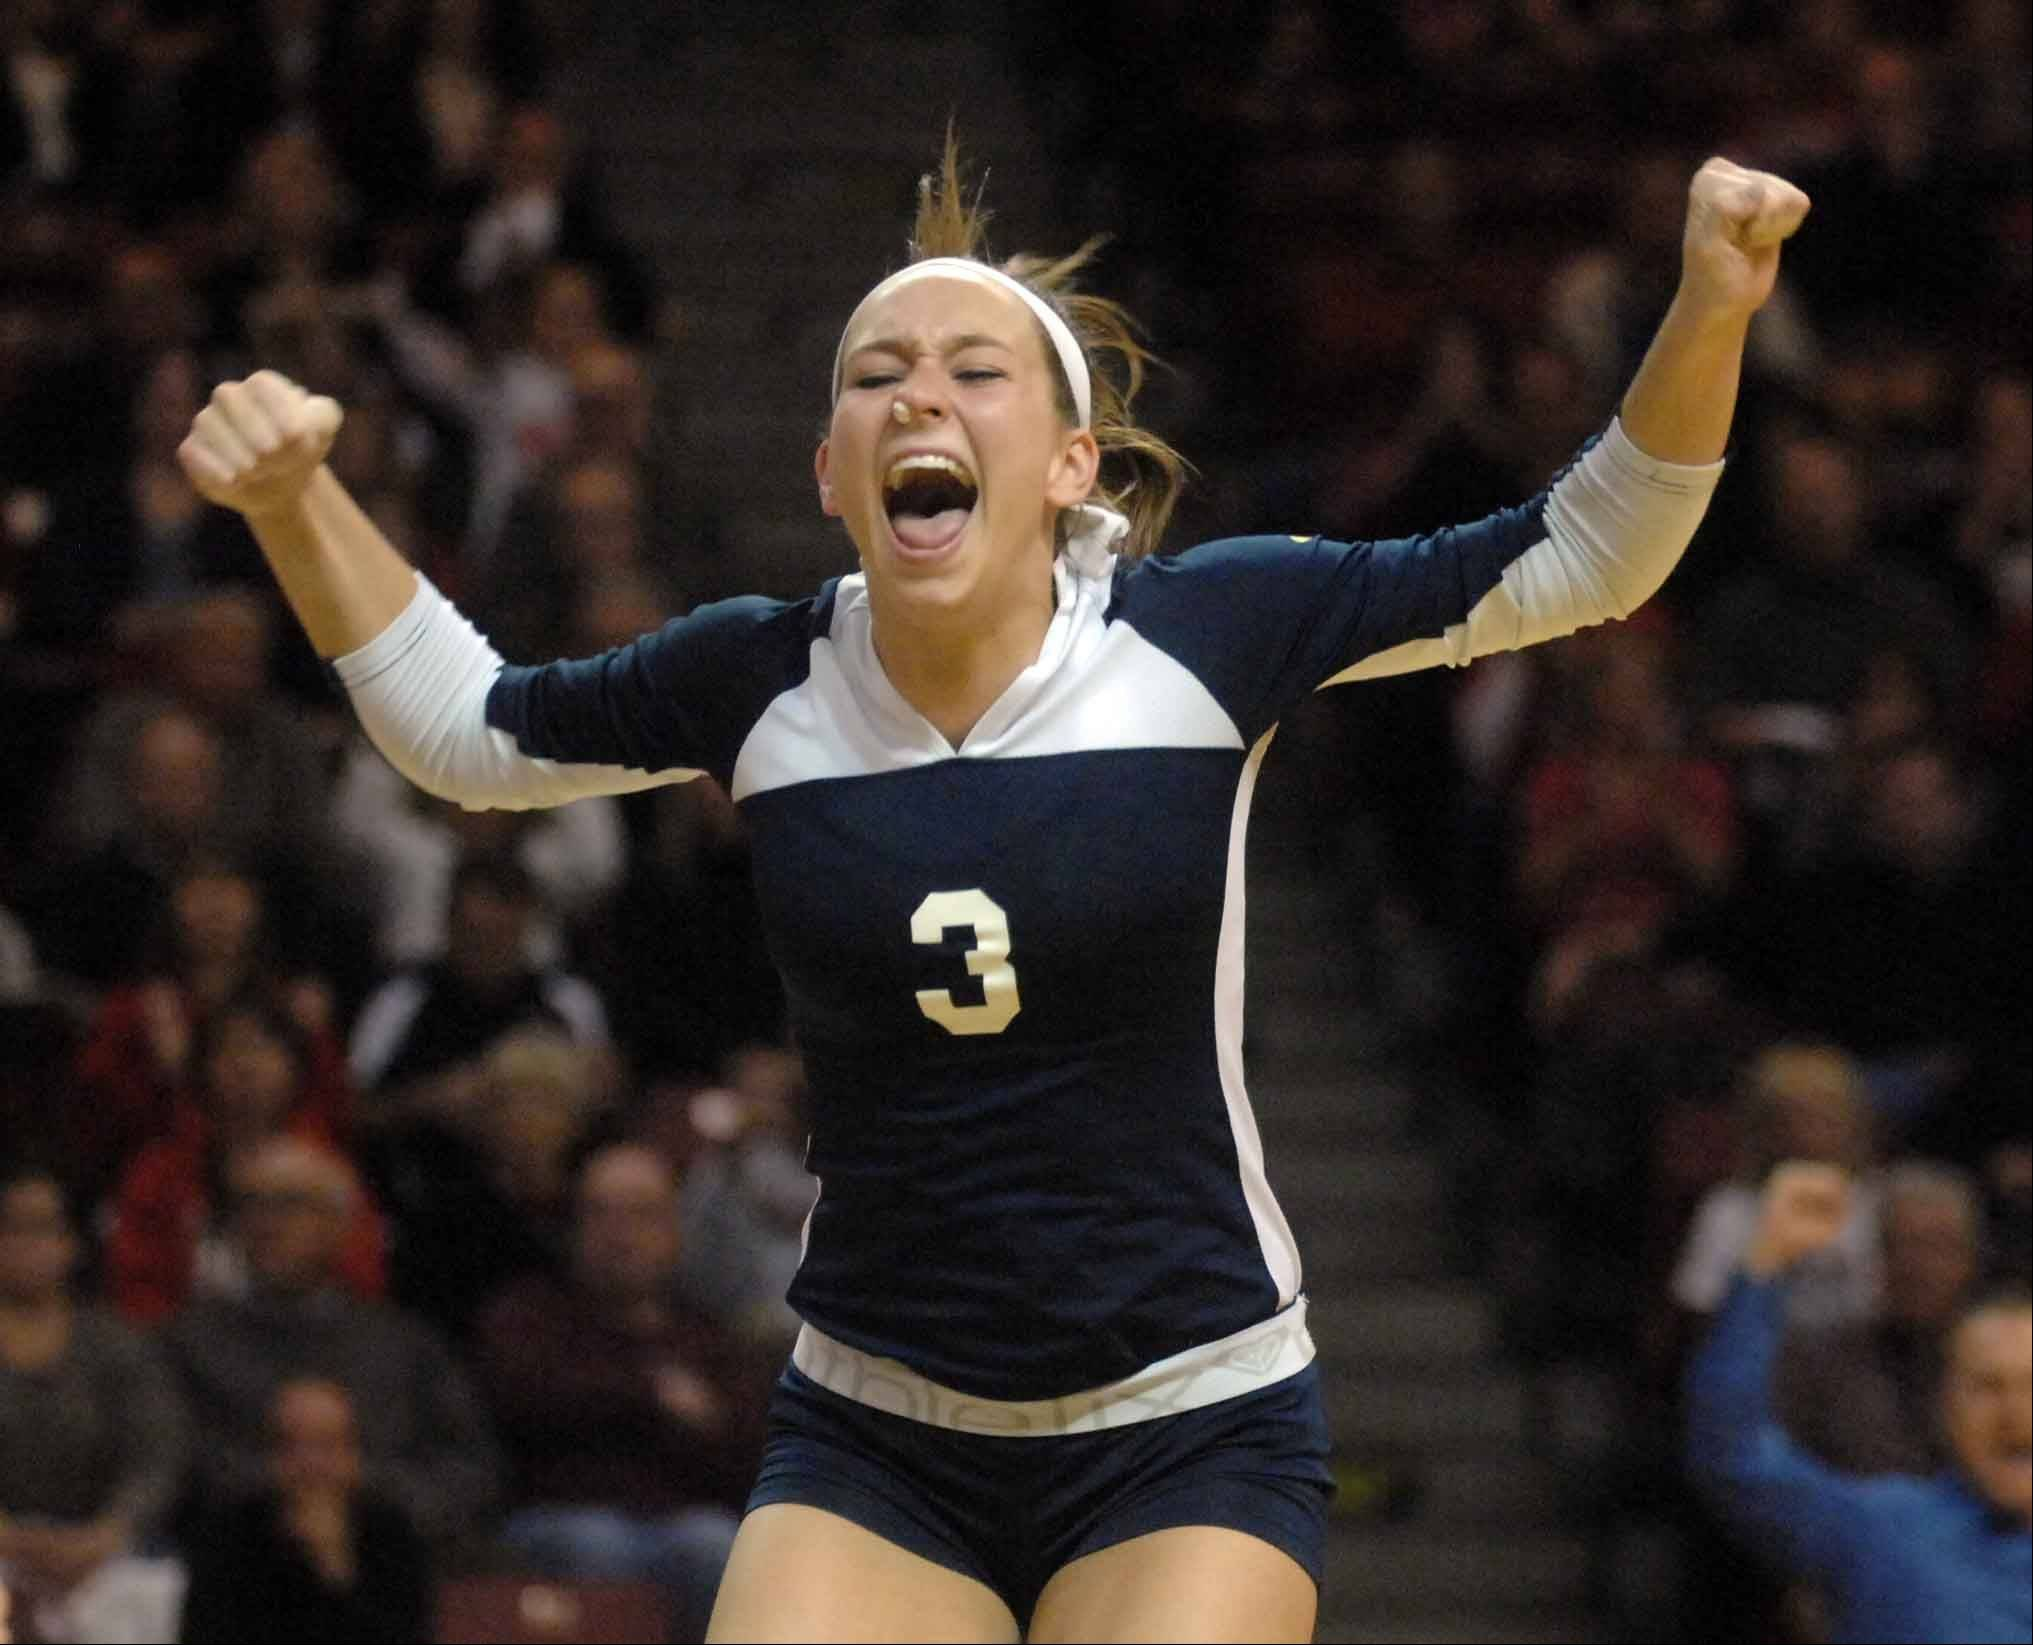 Korey Kronforst of Cary-Grove gets excited during the Benet vs. Cary Class 4A state volleyball championship game in Normal Saturday.